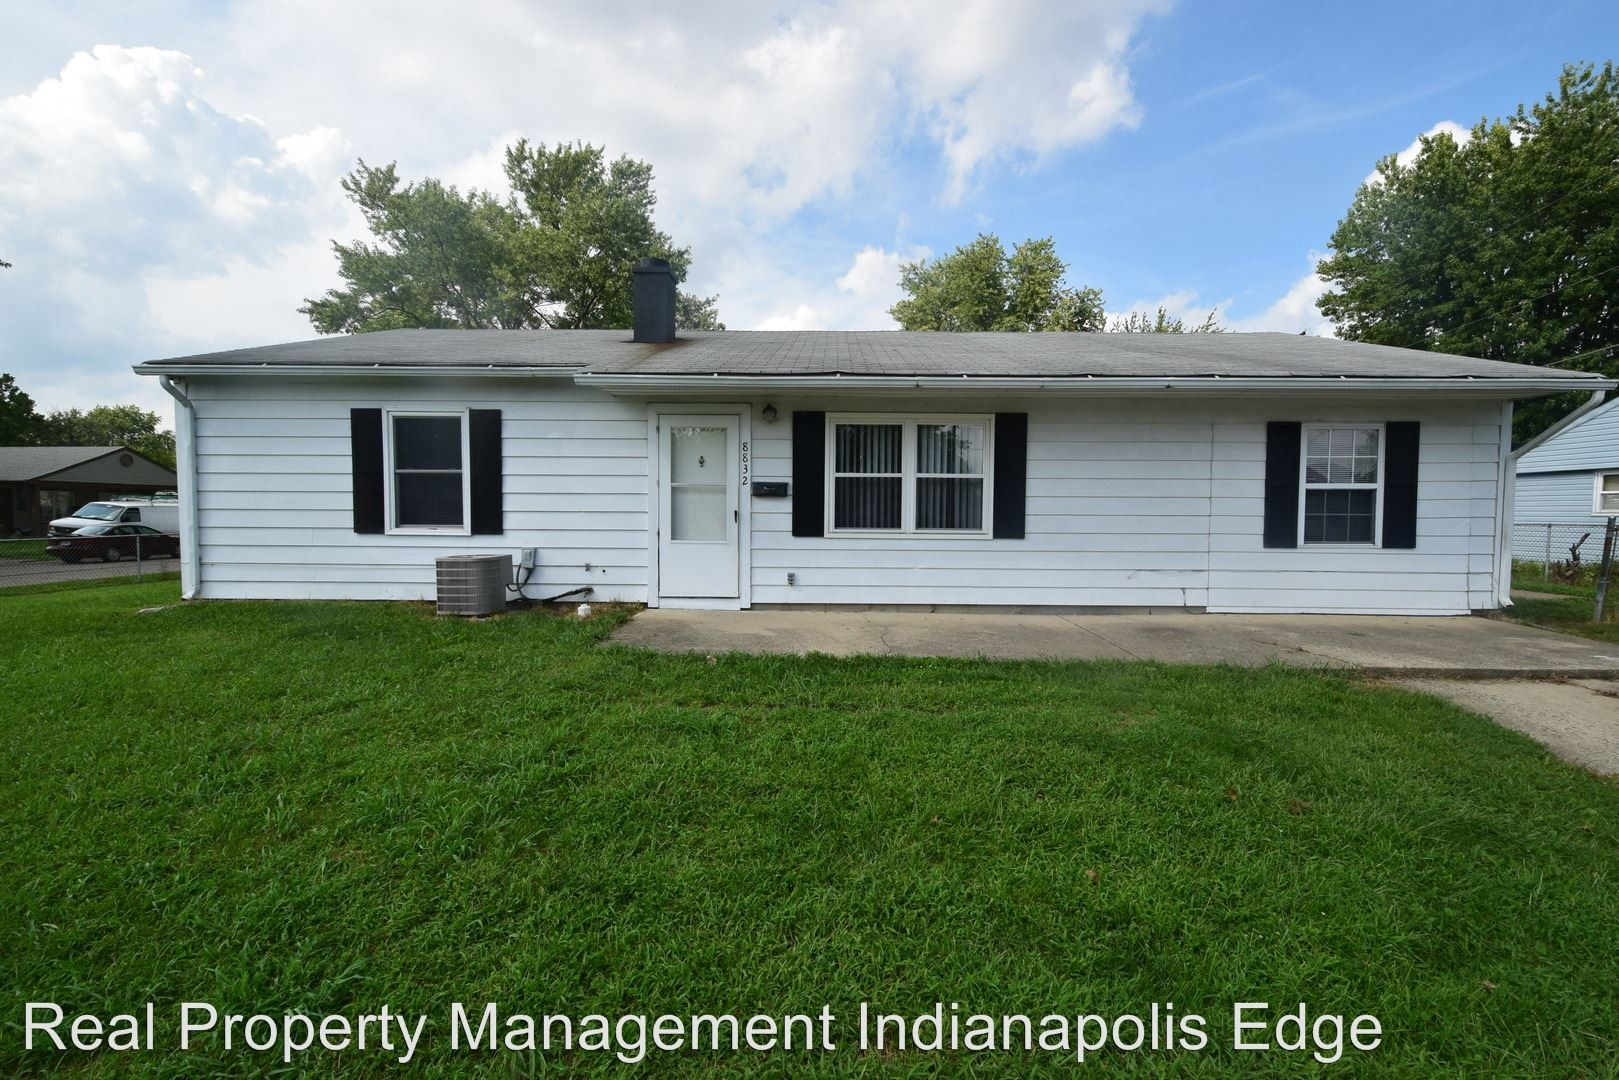 8832 Roy Rd Indianapolis In 46219 4 Bedroom House For Rent For 800 Month Zumper